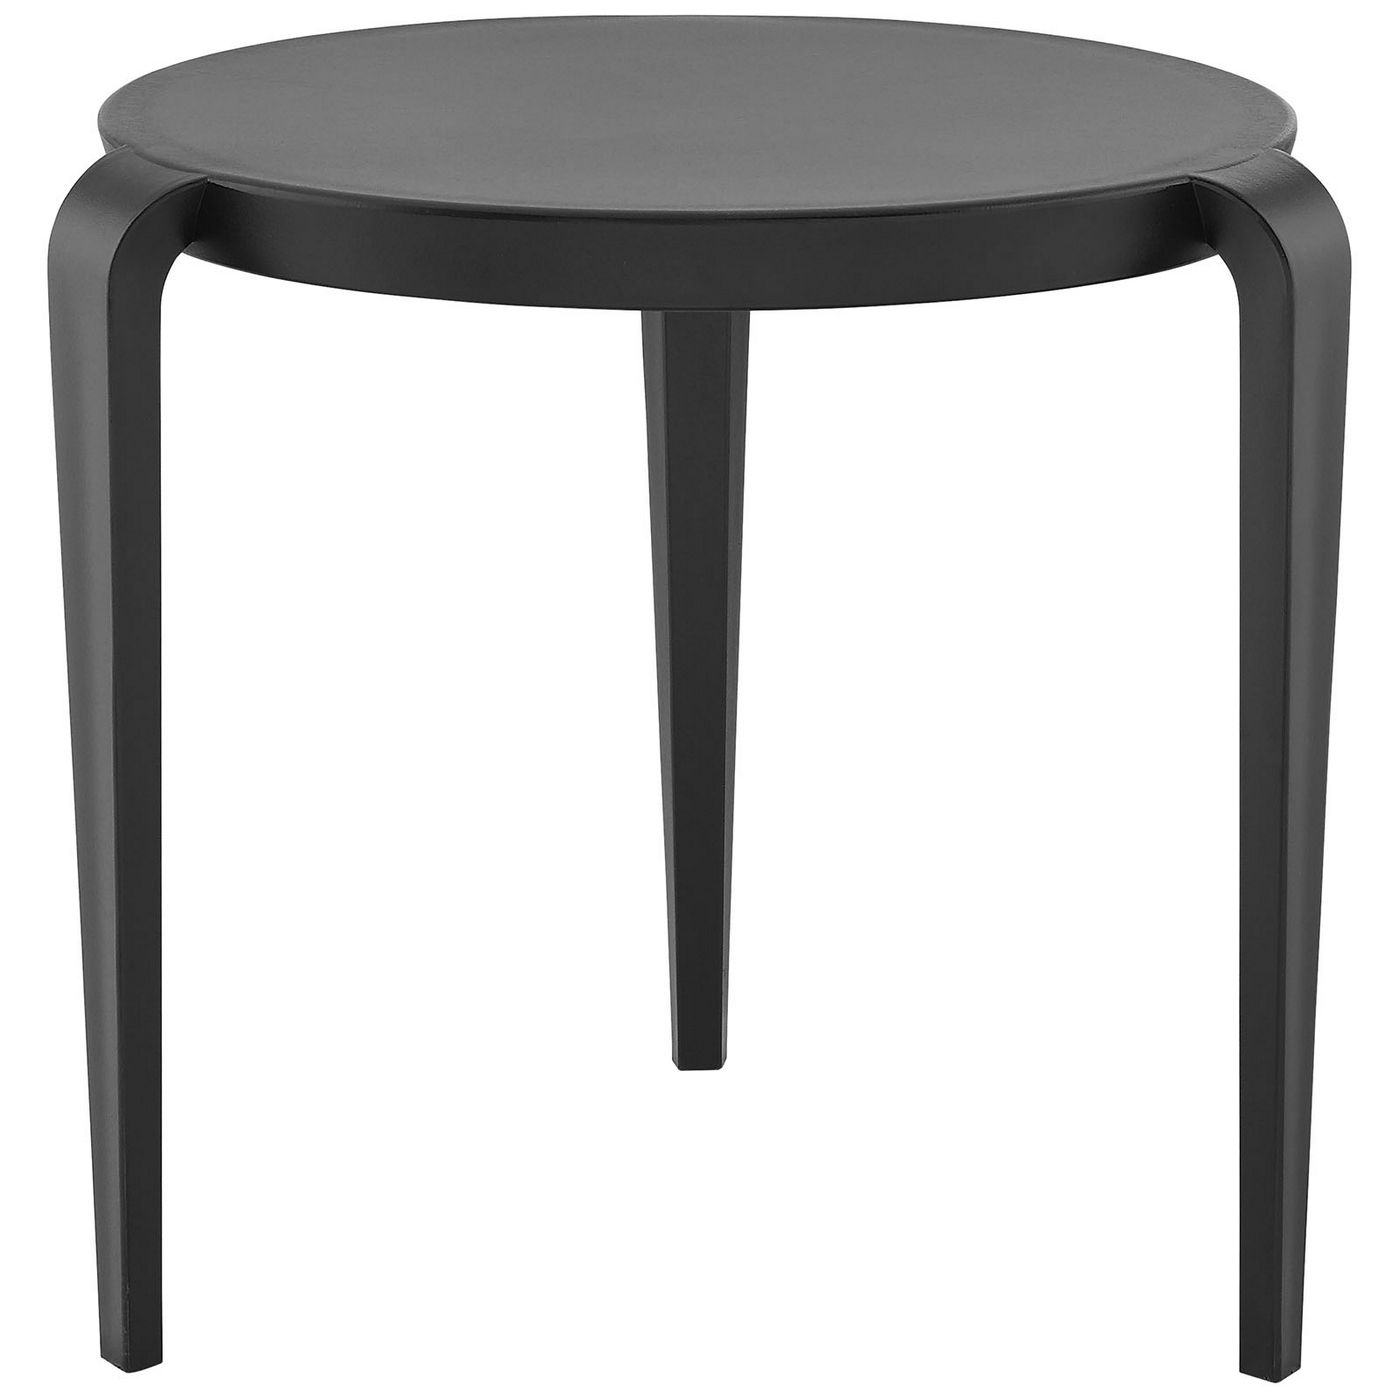 Spin Contemporary 3 legged Round Plastic Side Table Black